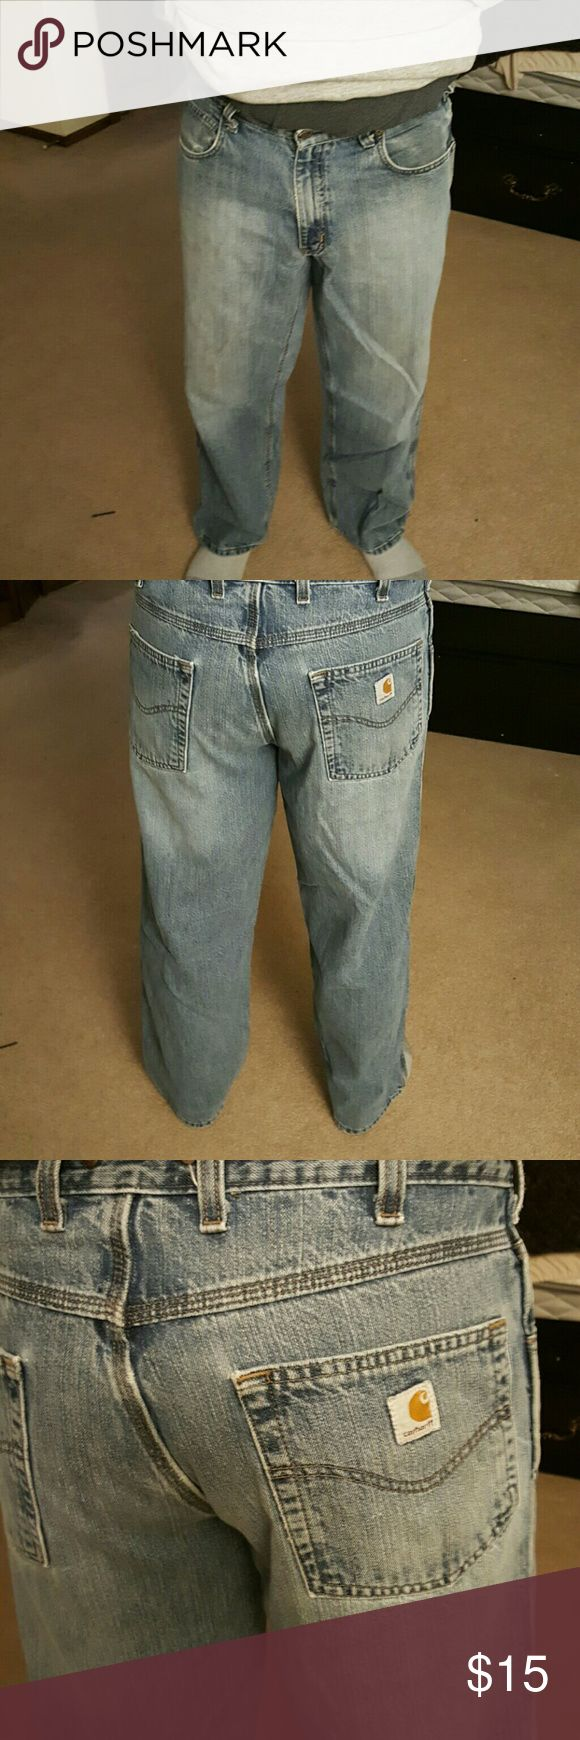 Mens carhart jeans Gently used Carhartt Jeans Relaxed